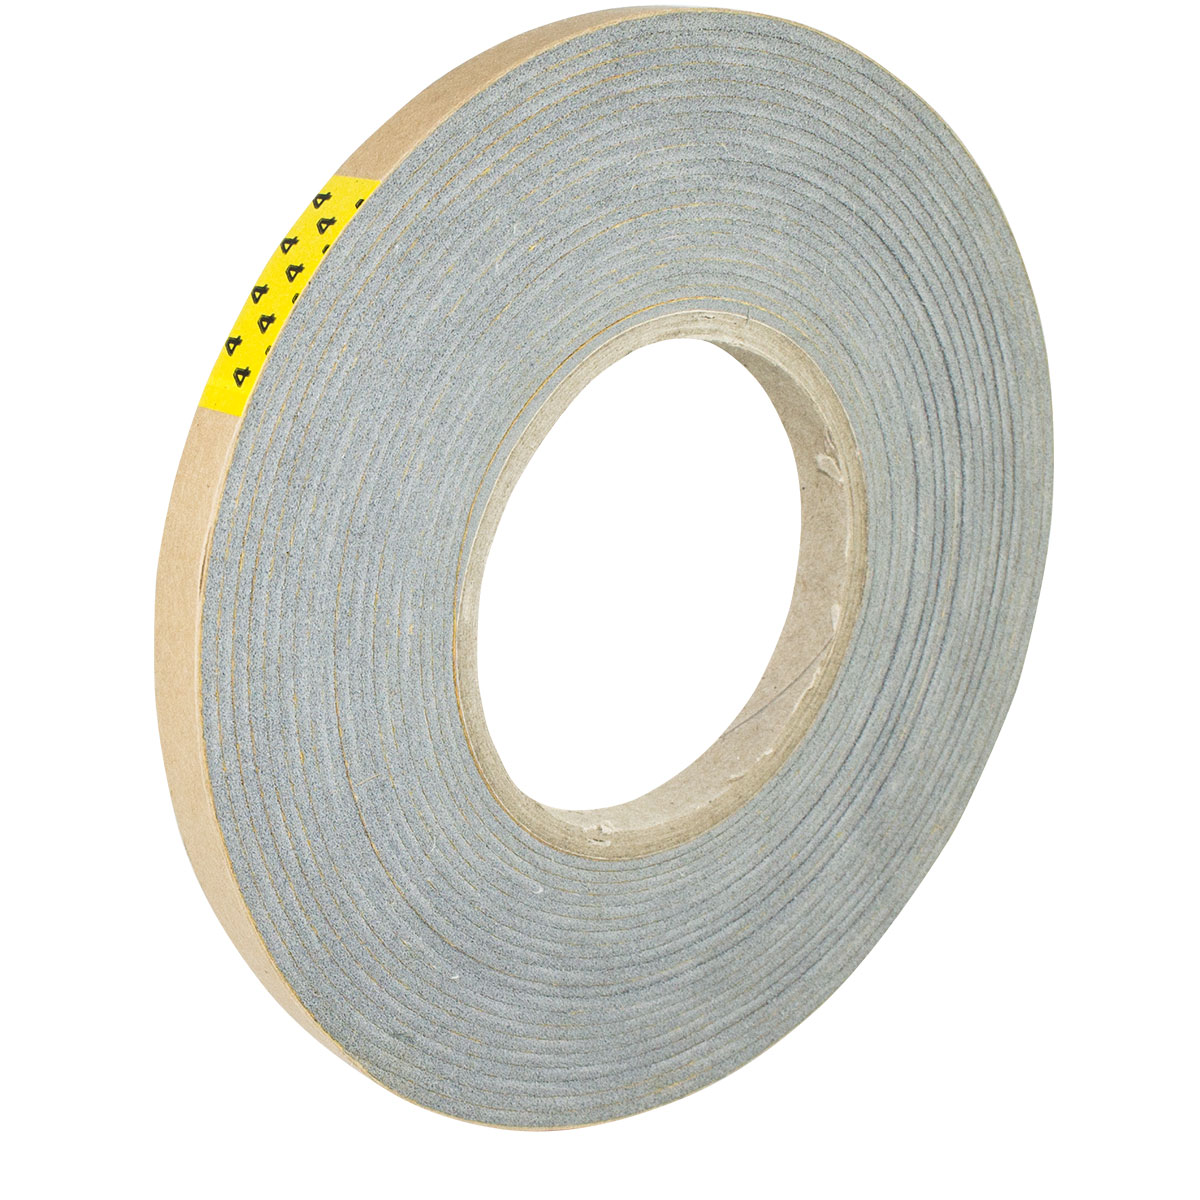 Insulating and sealing tape for window sealing